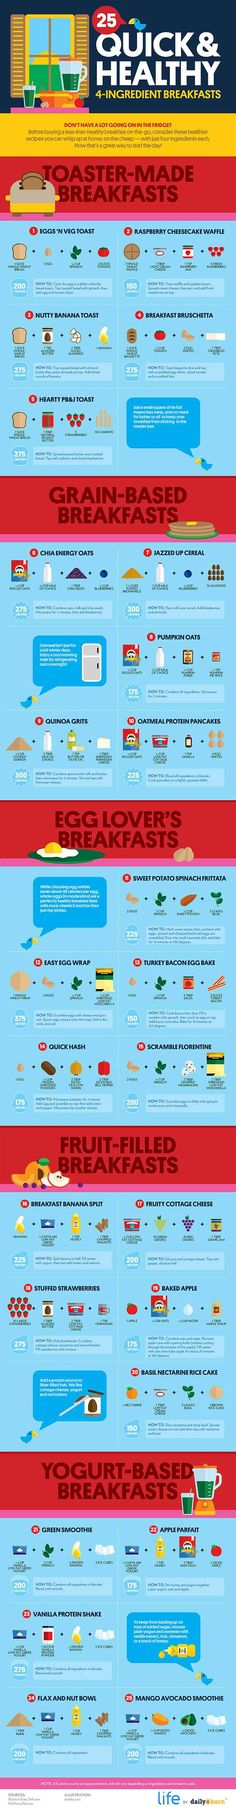 The days after a big food holiday can feel a little… sluggish. Start things off right with an easy, healthy breakfast.